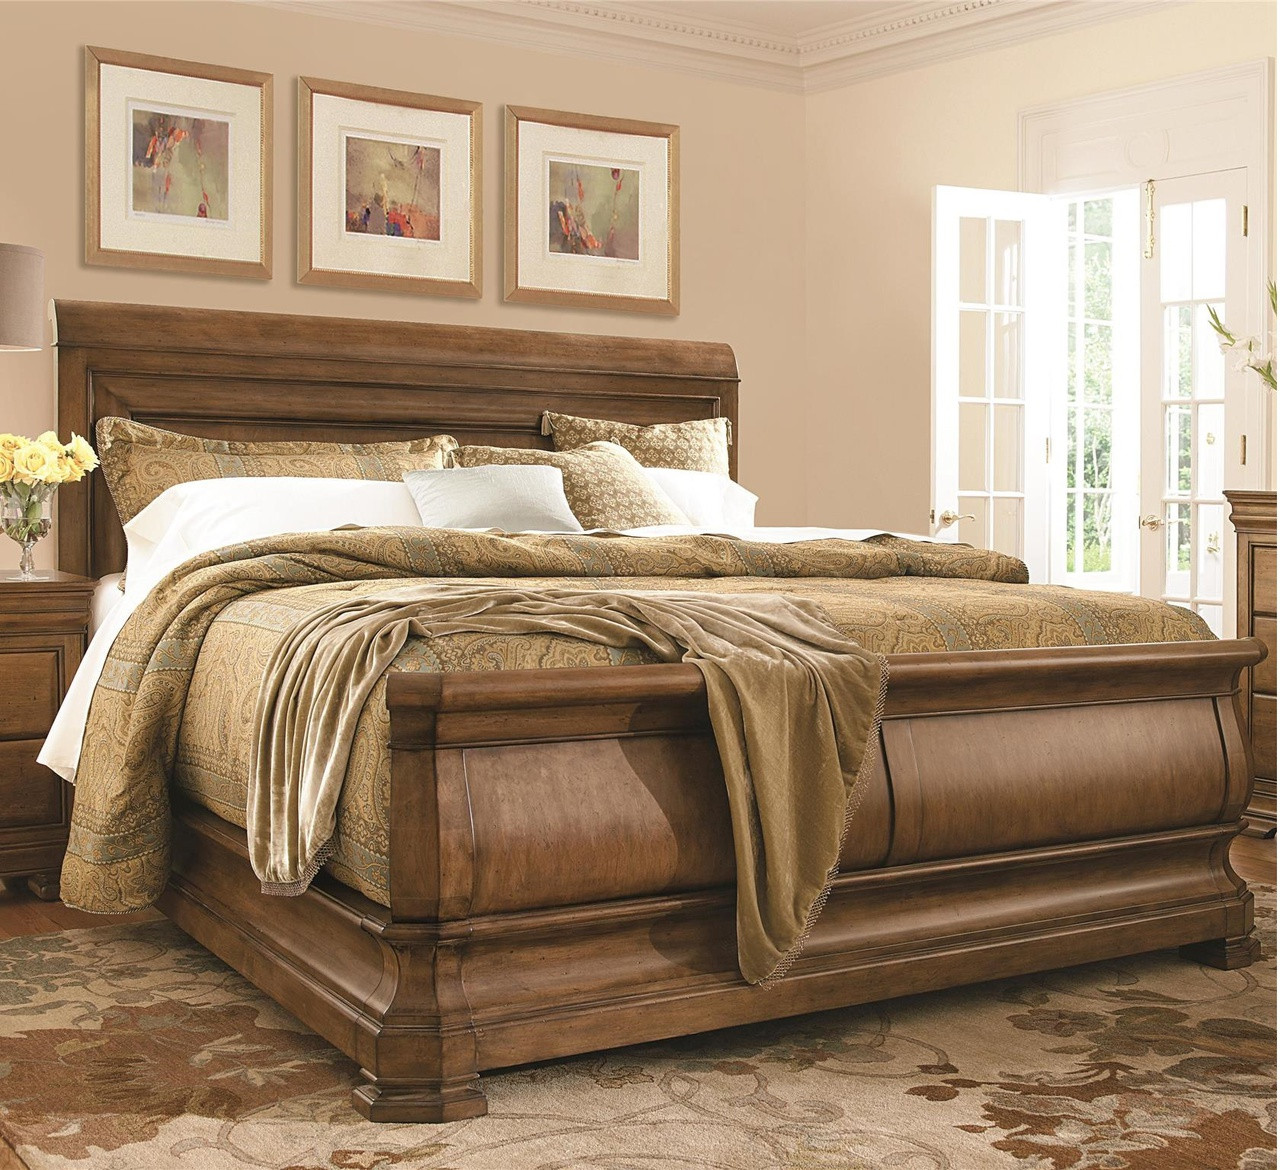 french louis philippe solid wood king sleigh bed - King Sleigh Bed